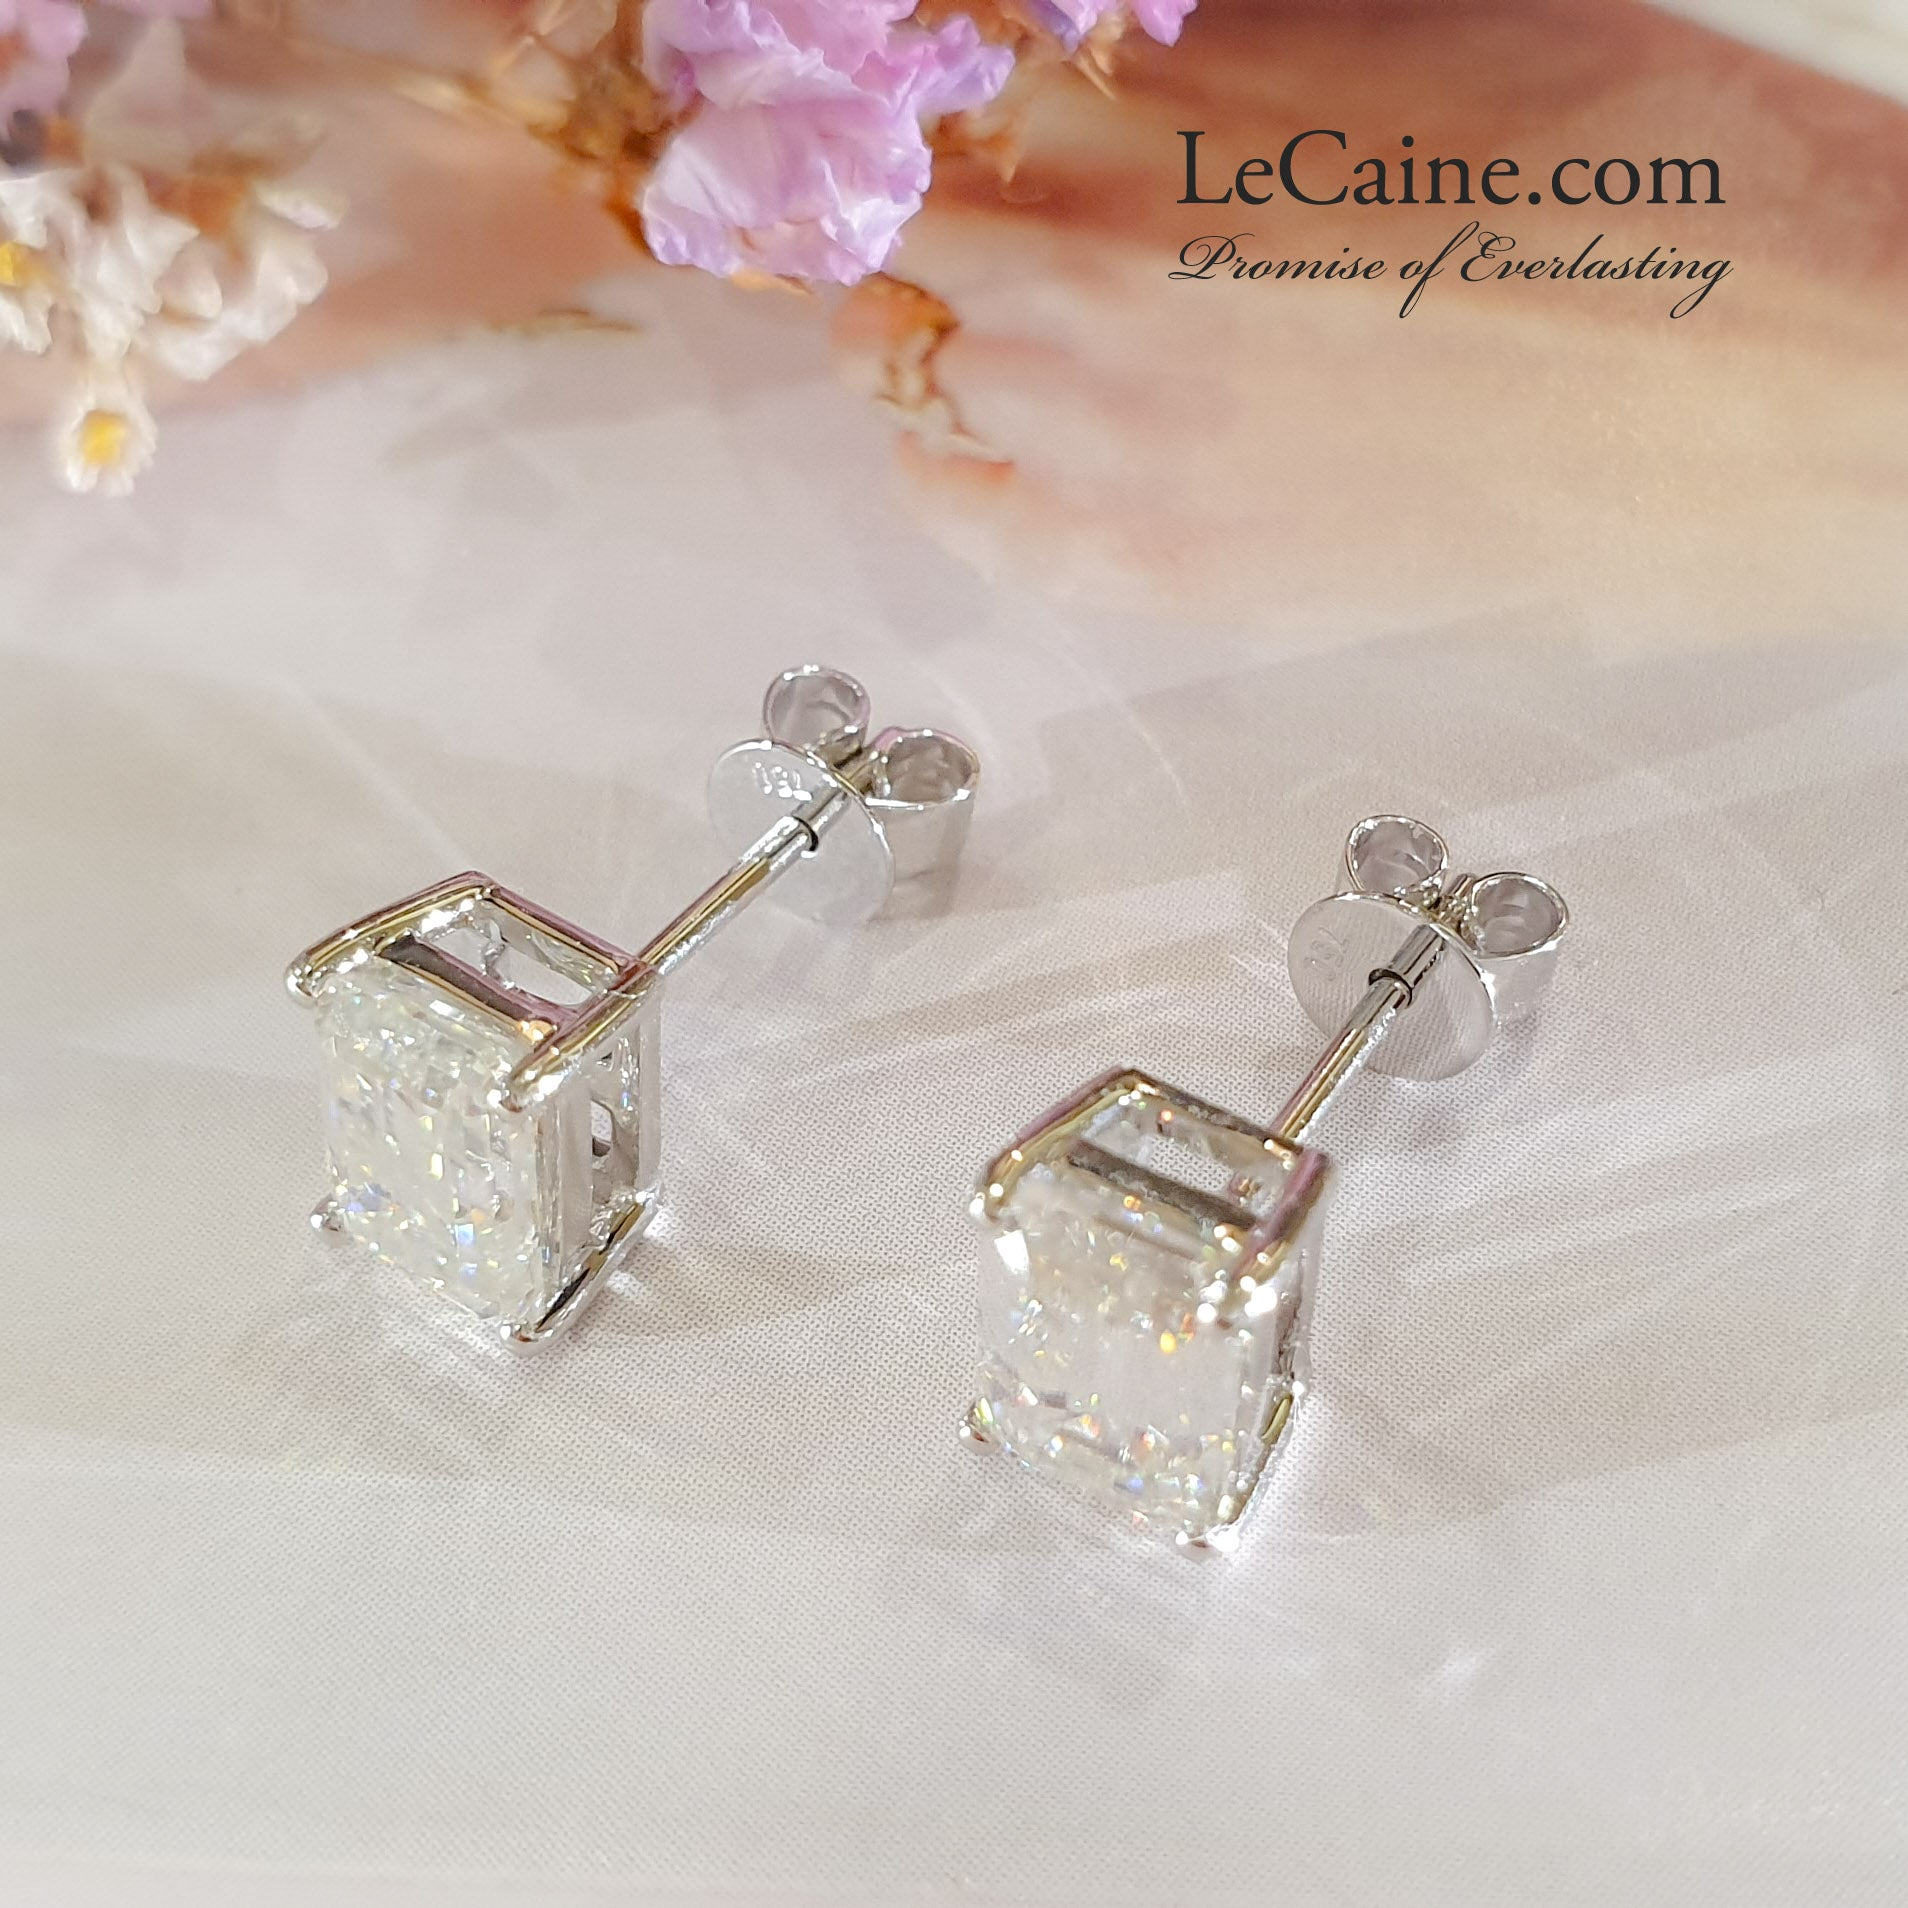 1 Carat Emerald Cut Moissanite Stud Earrings